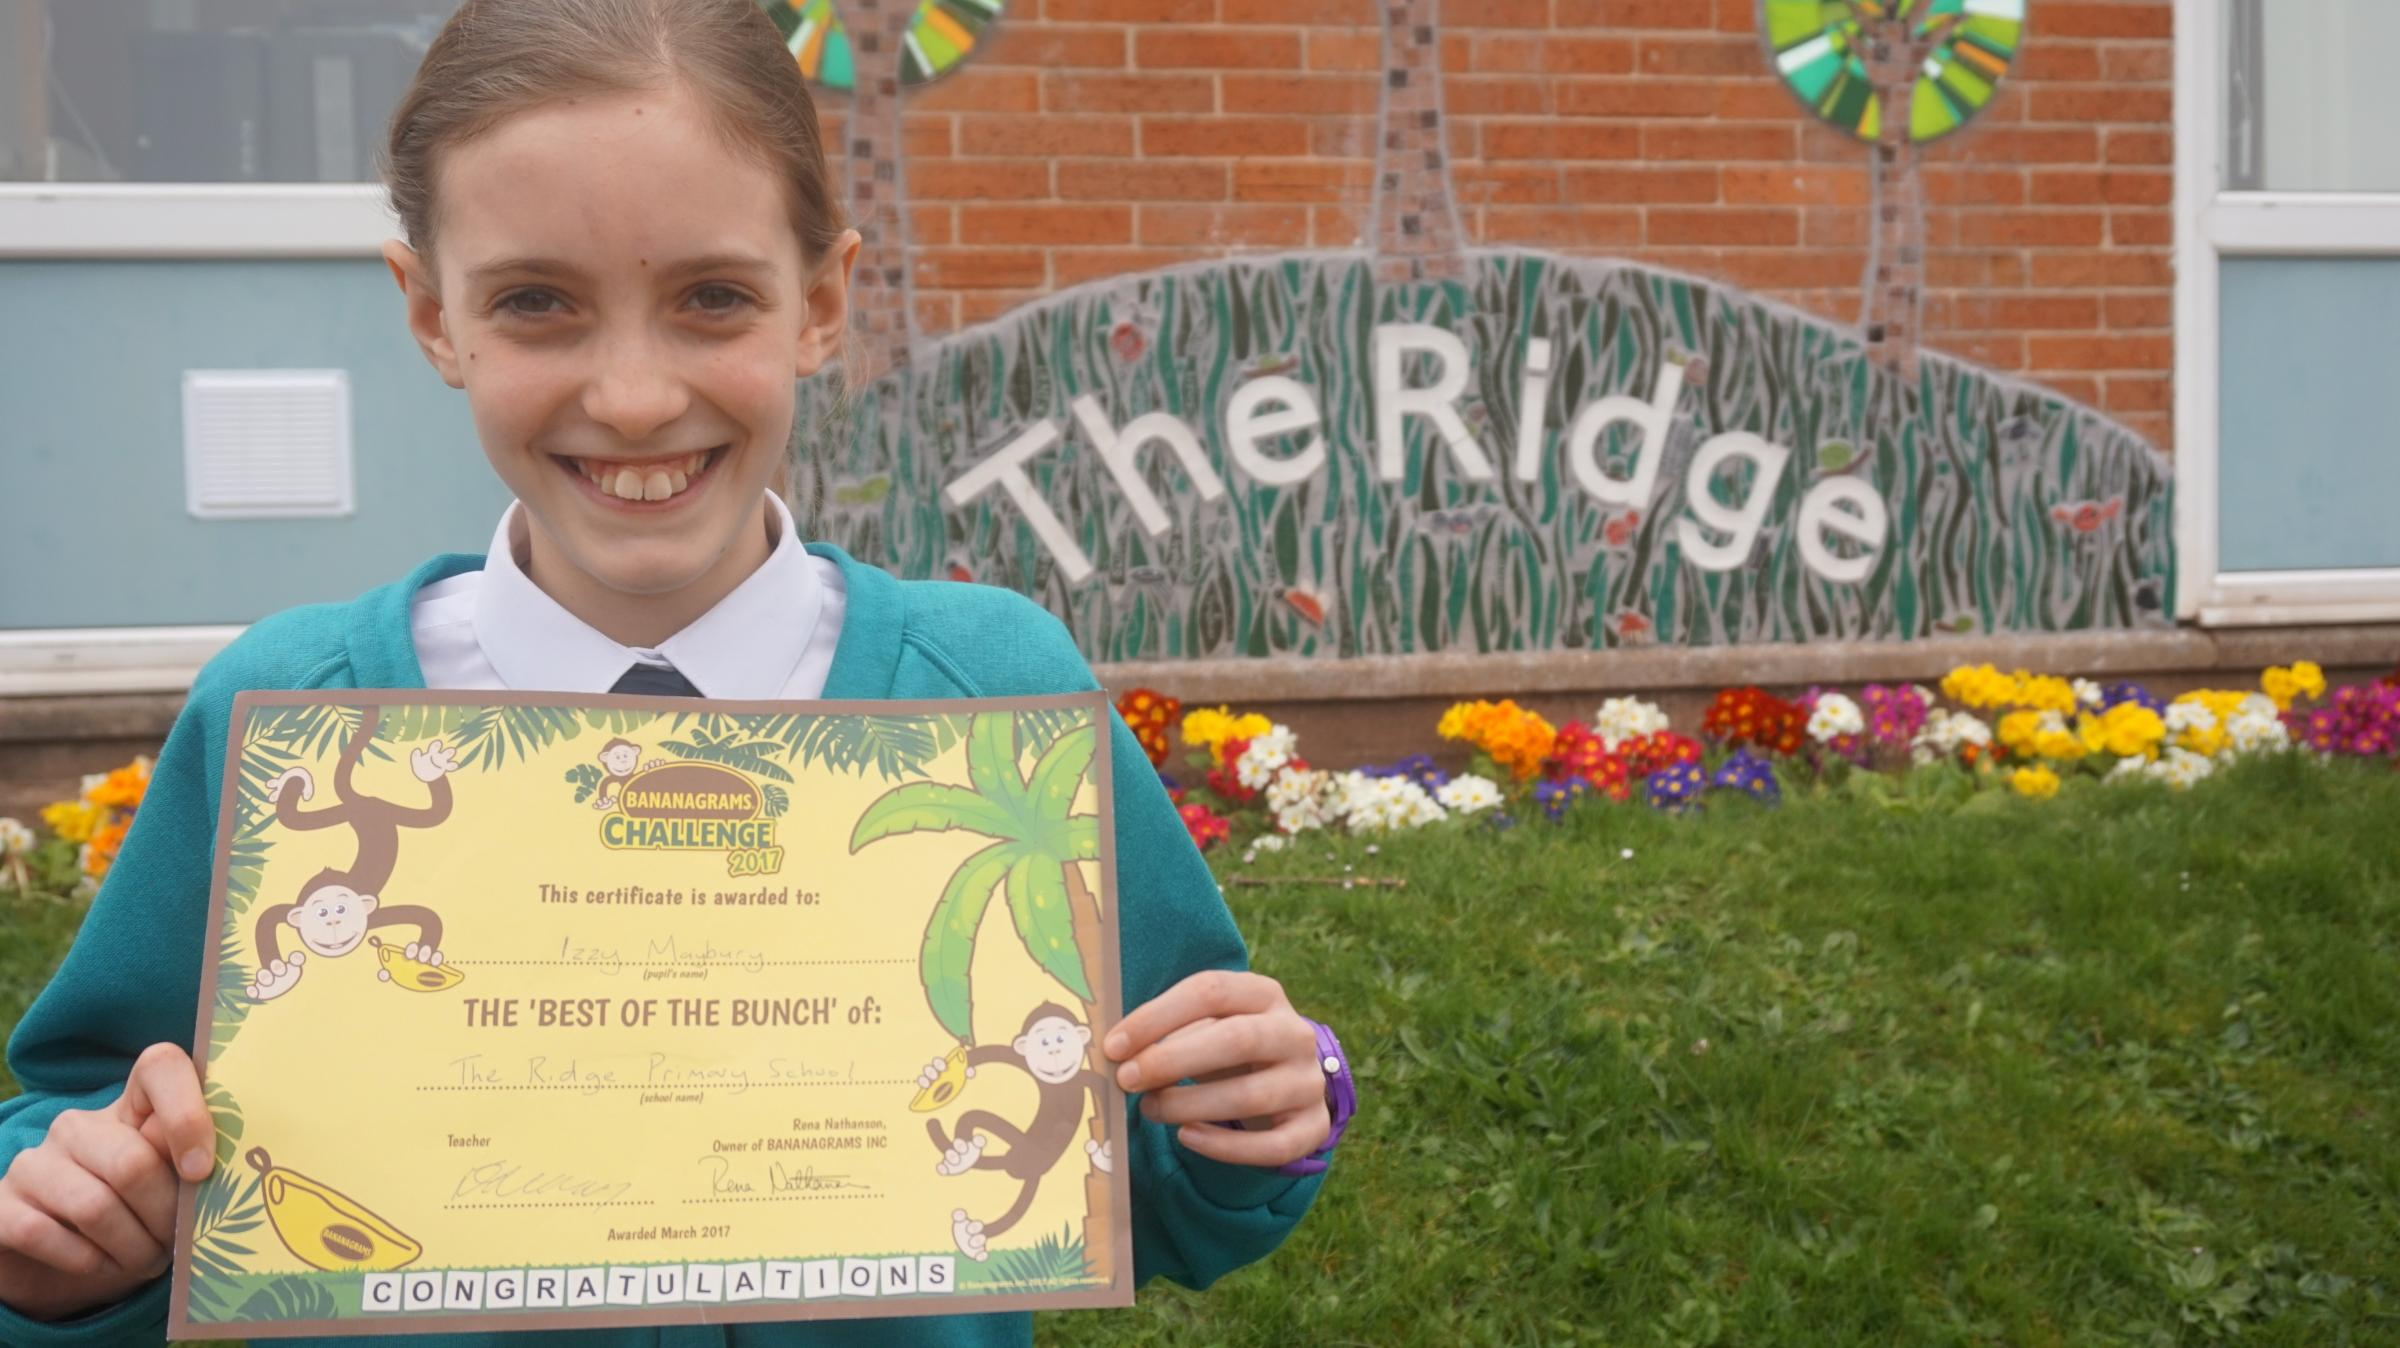 Izzy Maybury, of The Ridge Primary School, has made it into the final 12 of the national Bananagrams Challenge. Photo: Bananagrams